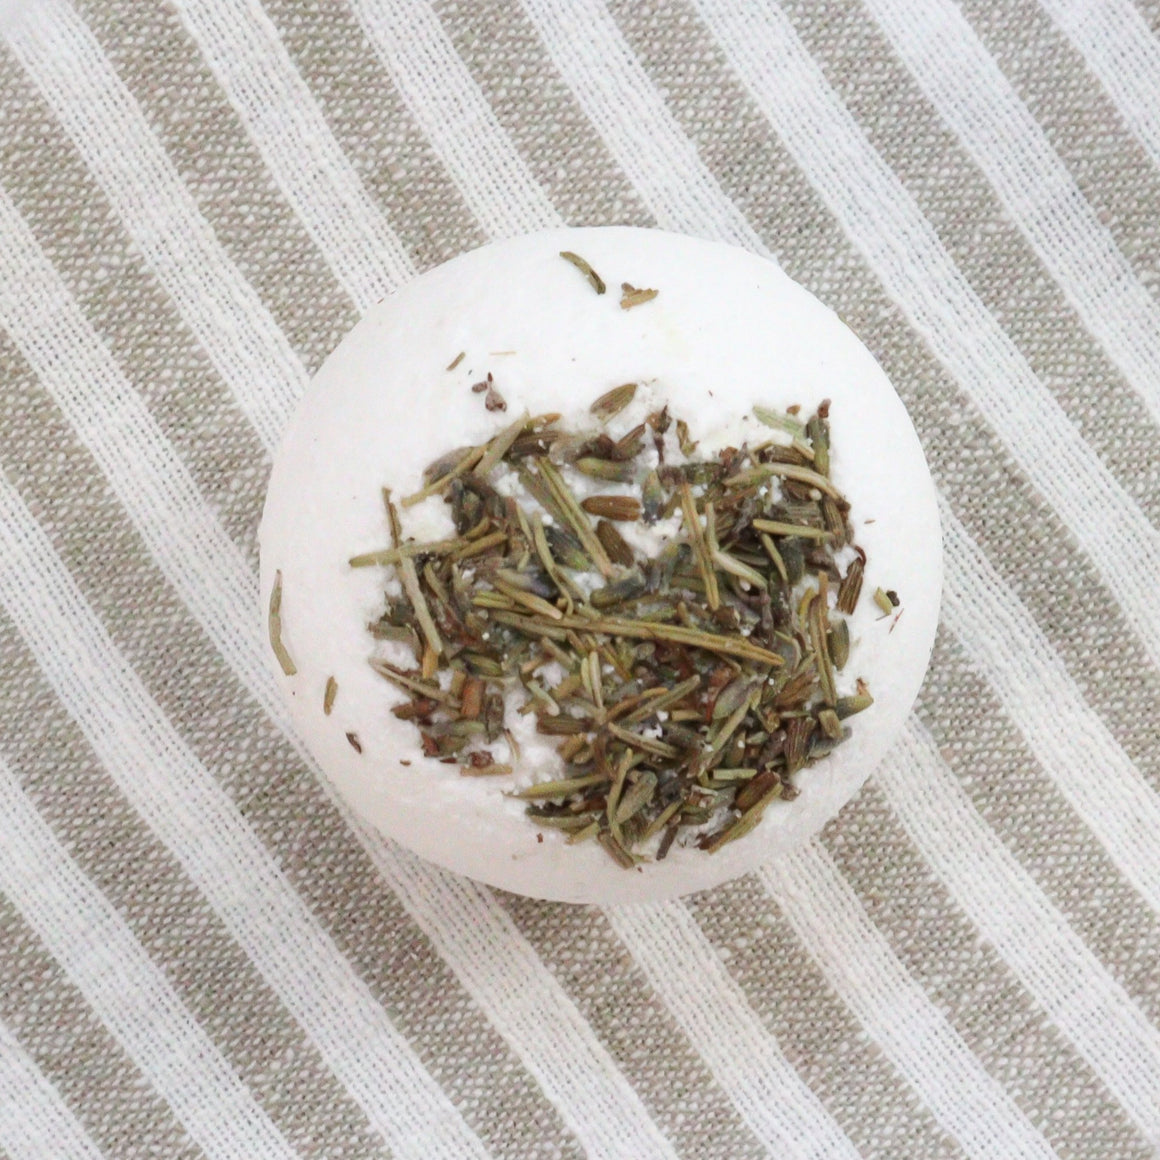 Lavender Rosemary Bath Bomb - 7 oz